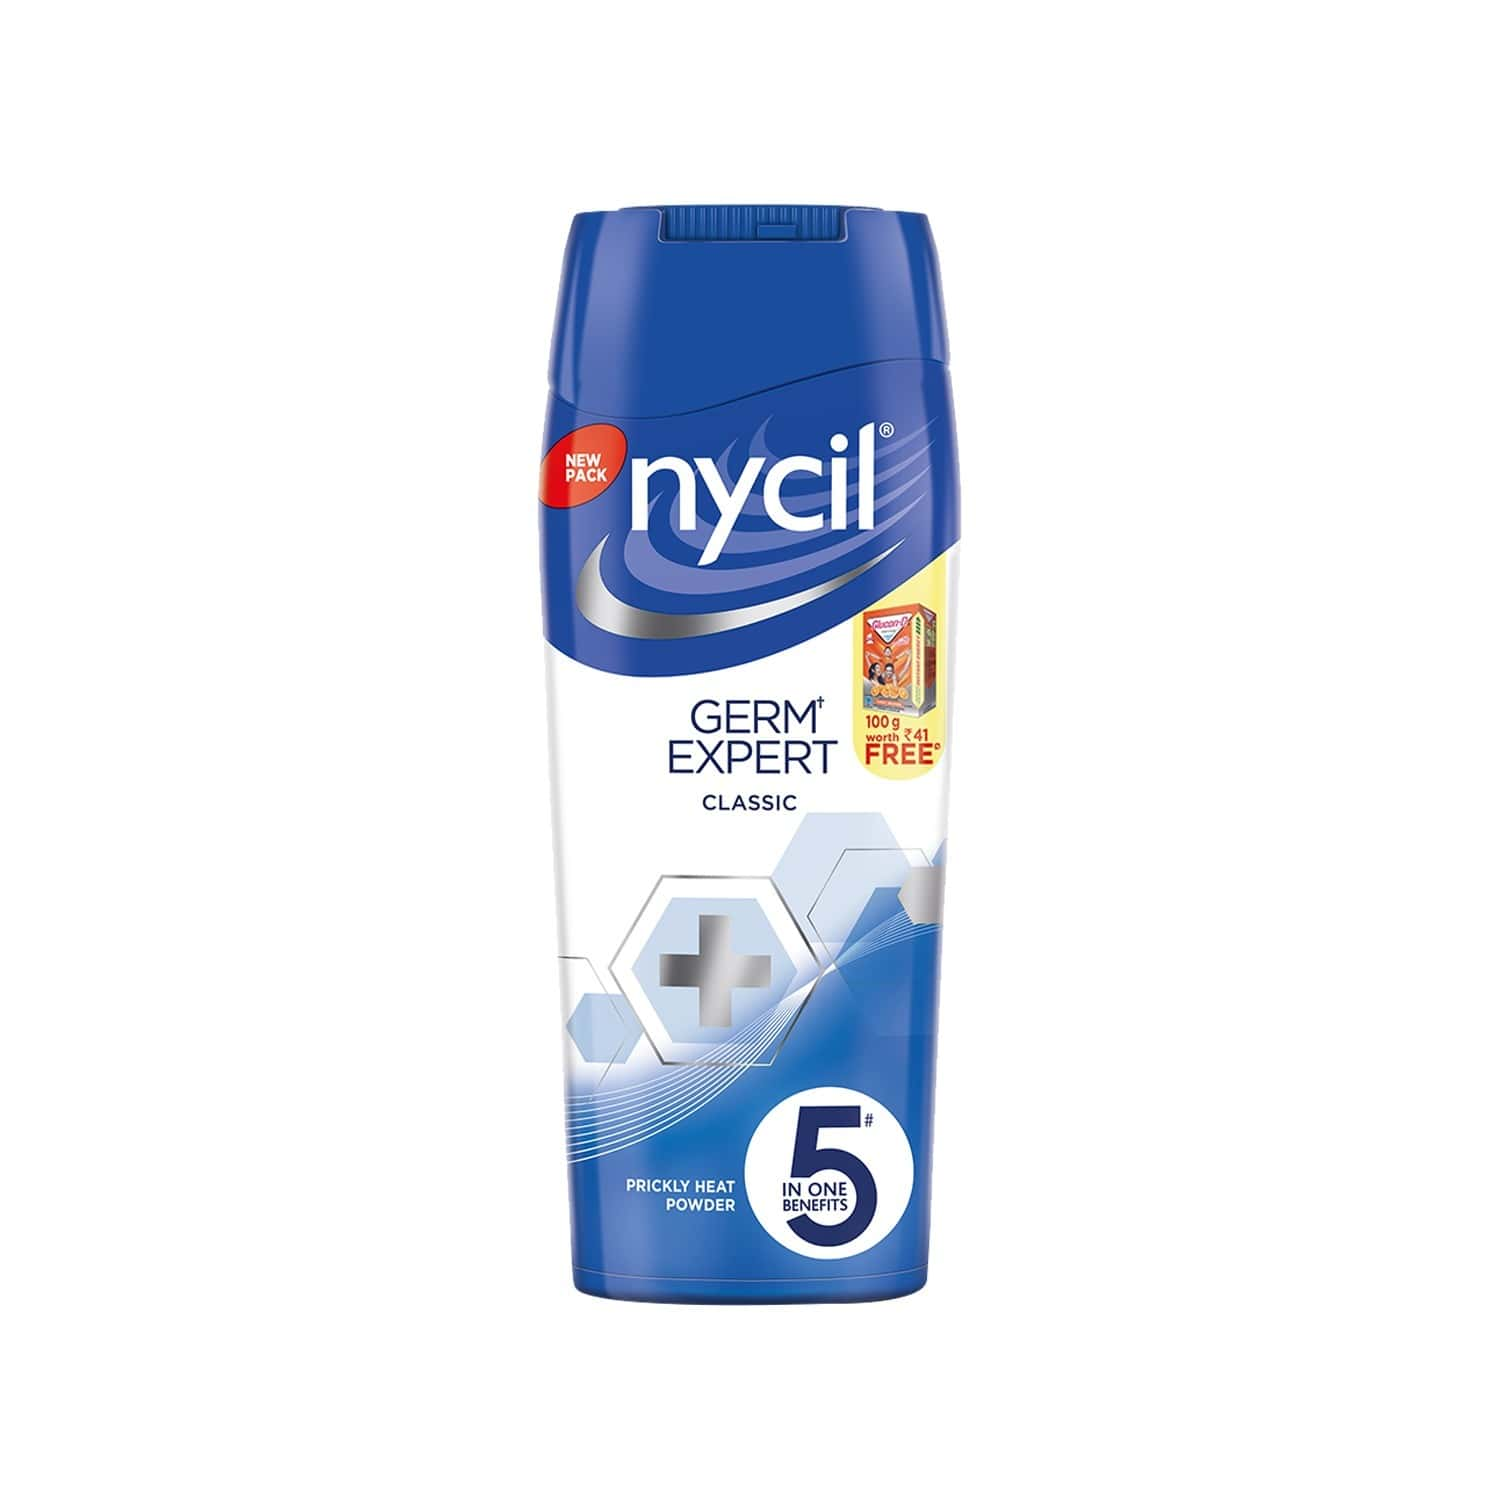 Nycil Classic Caring & Protection Prickly Heat Powder - 150gm (free Glucon-d Orange 100gm Worth Rs 41)